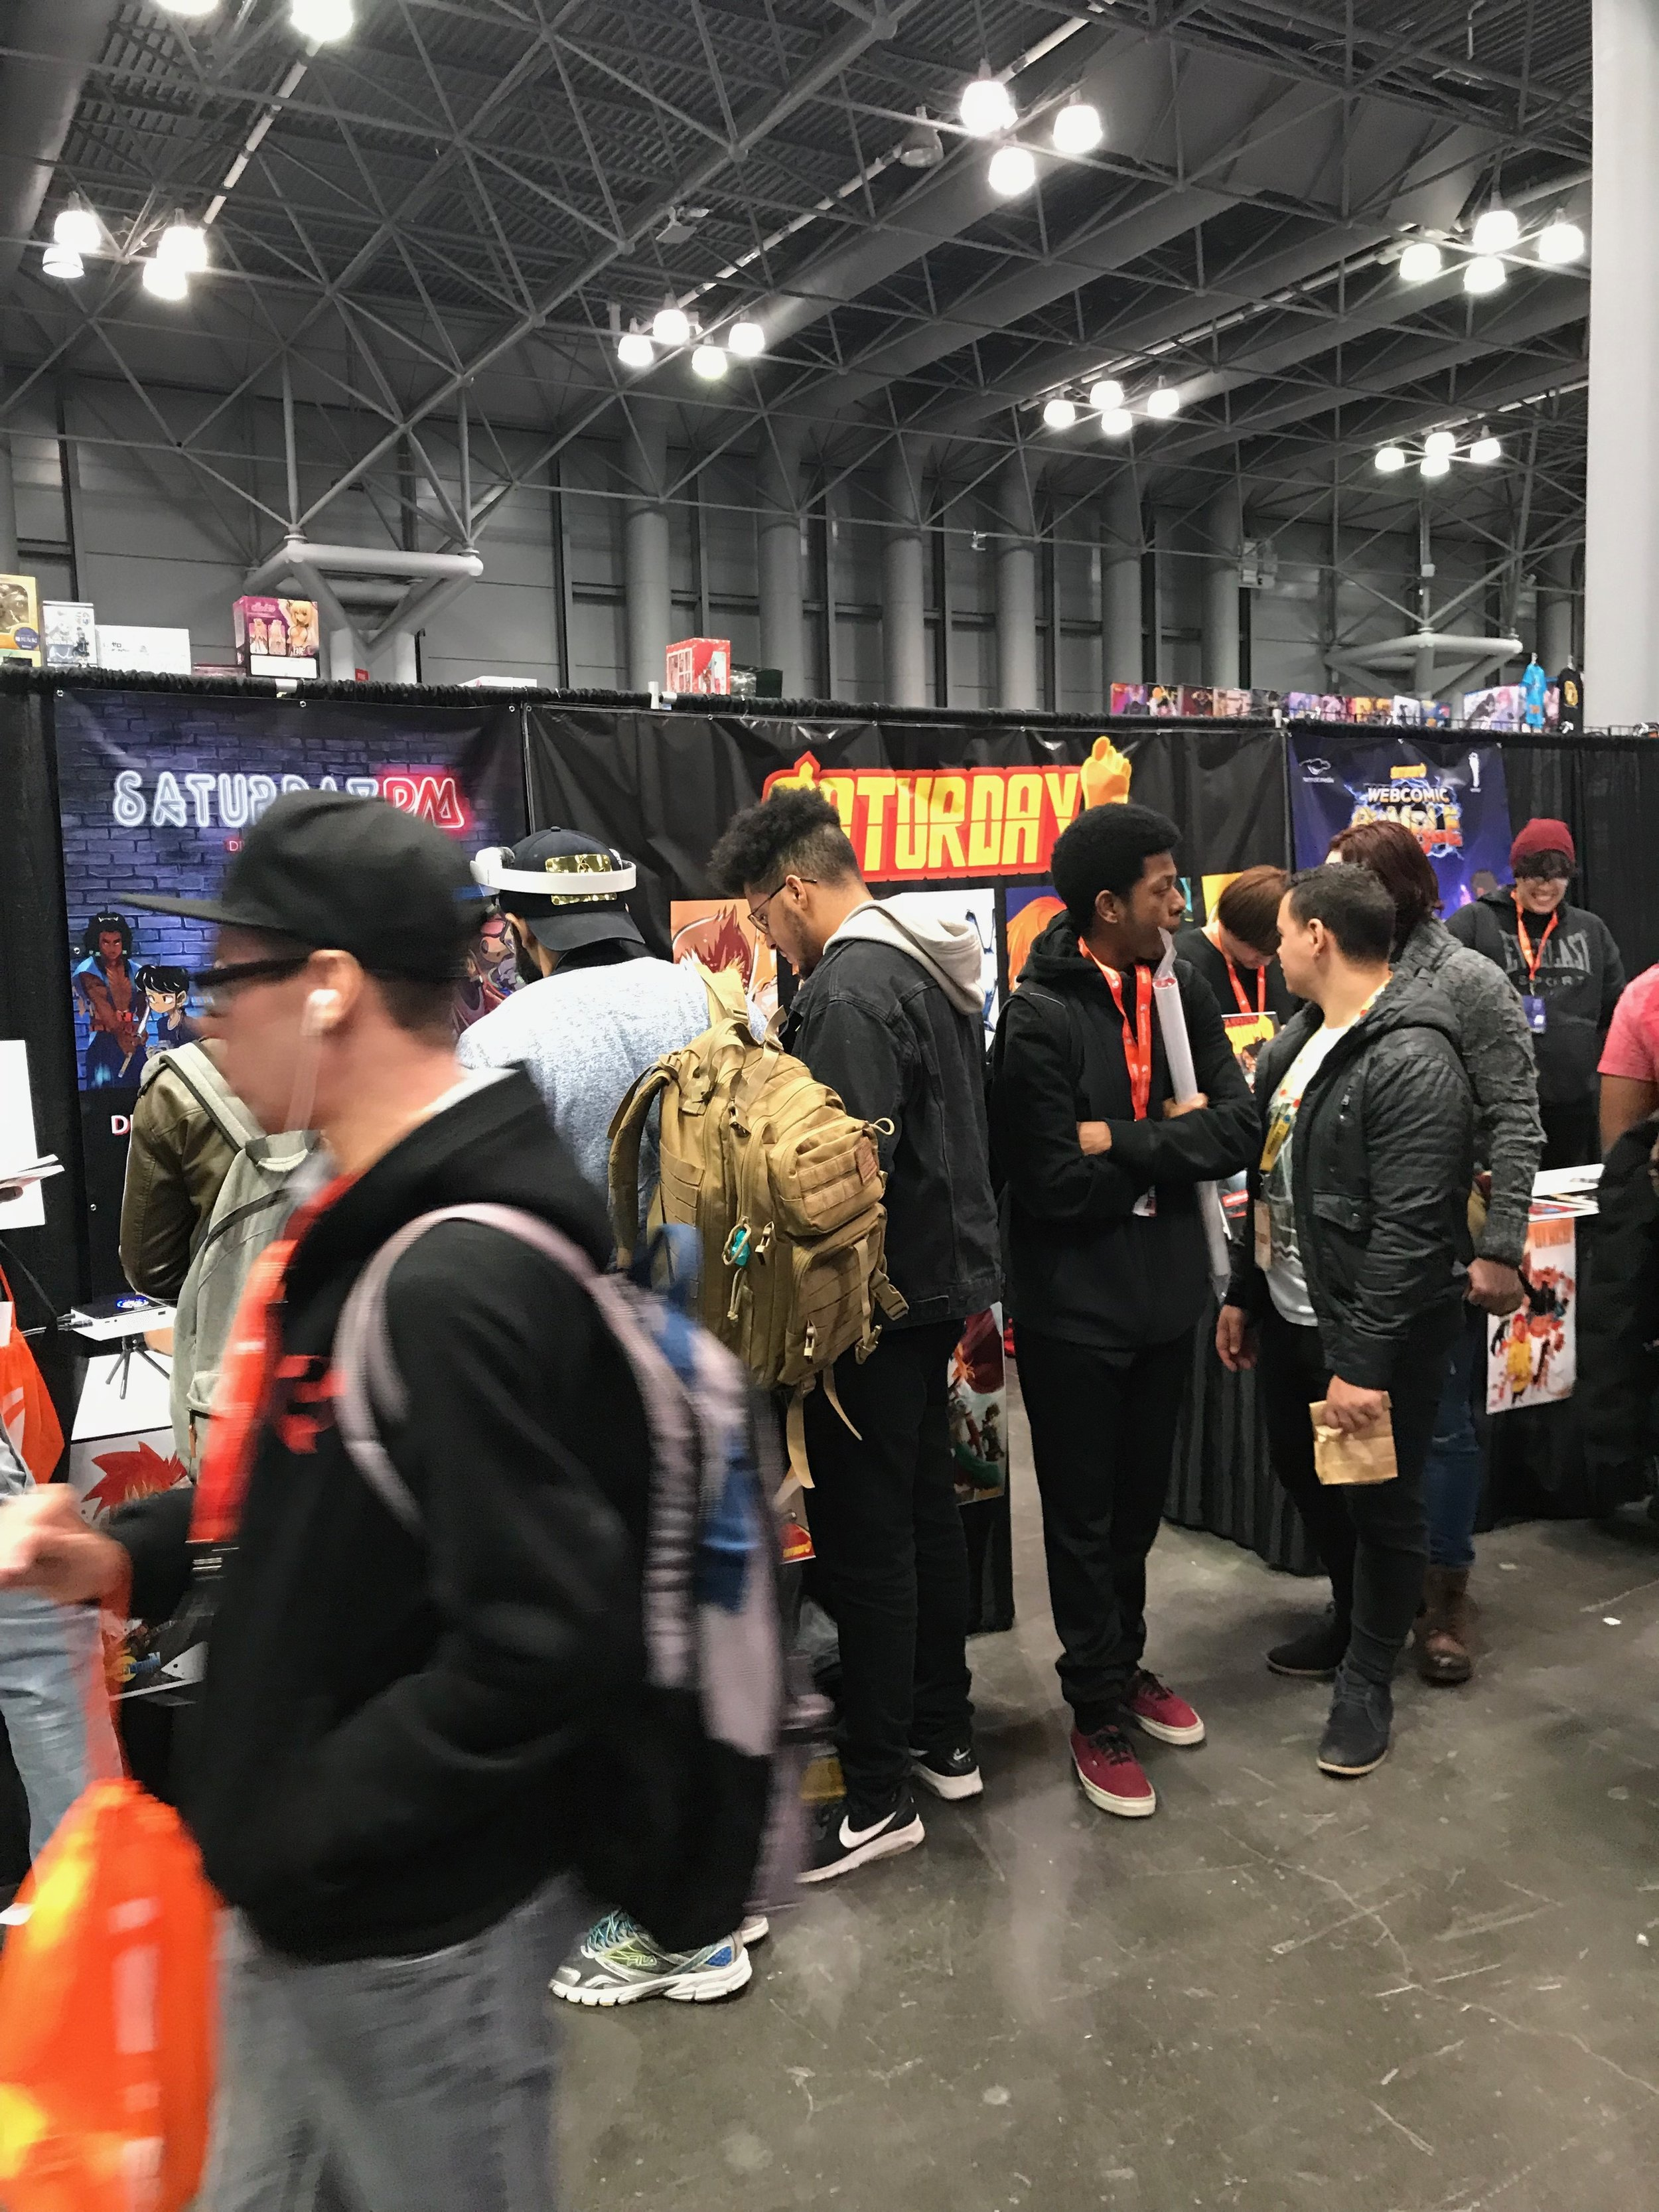 Our ANIMENYC booth for Saturday AM was packed!